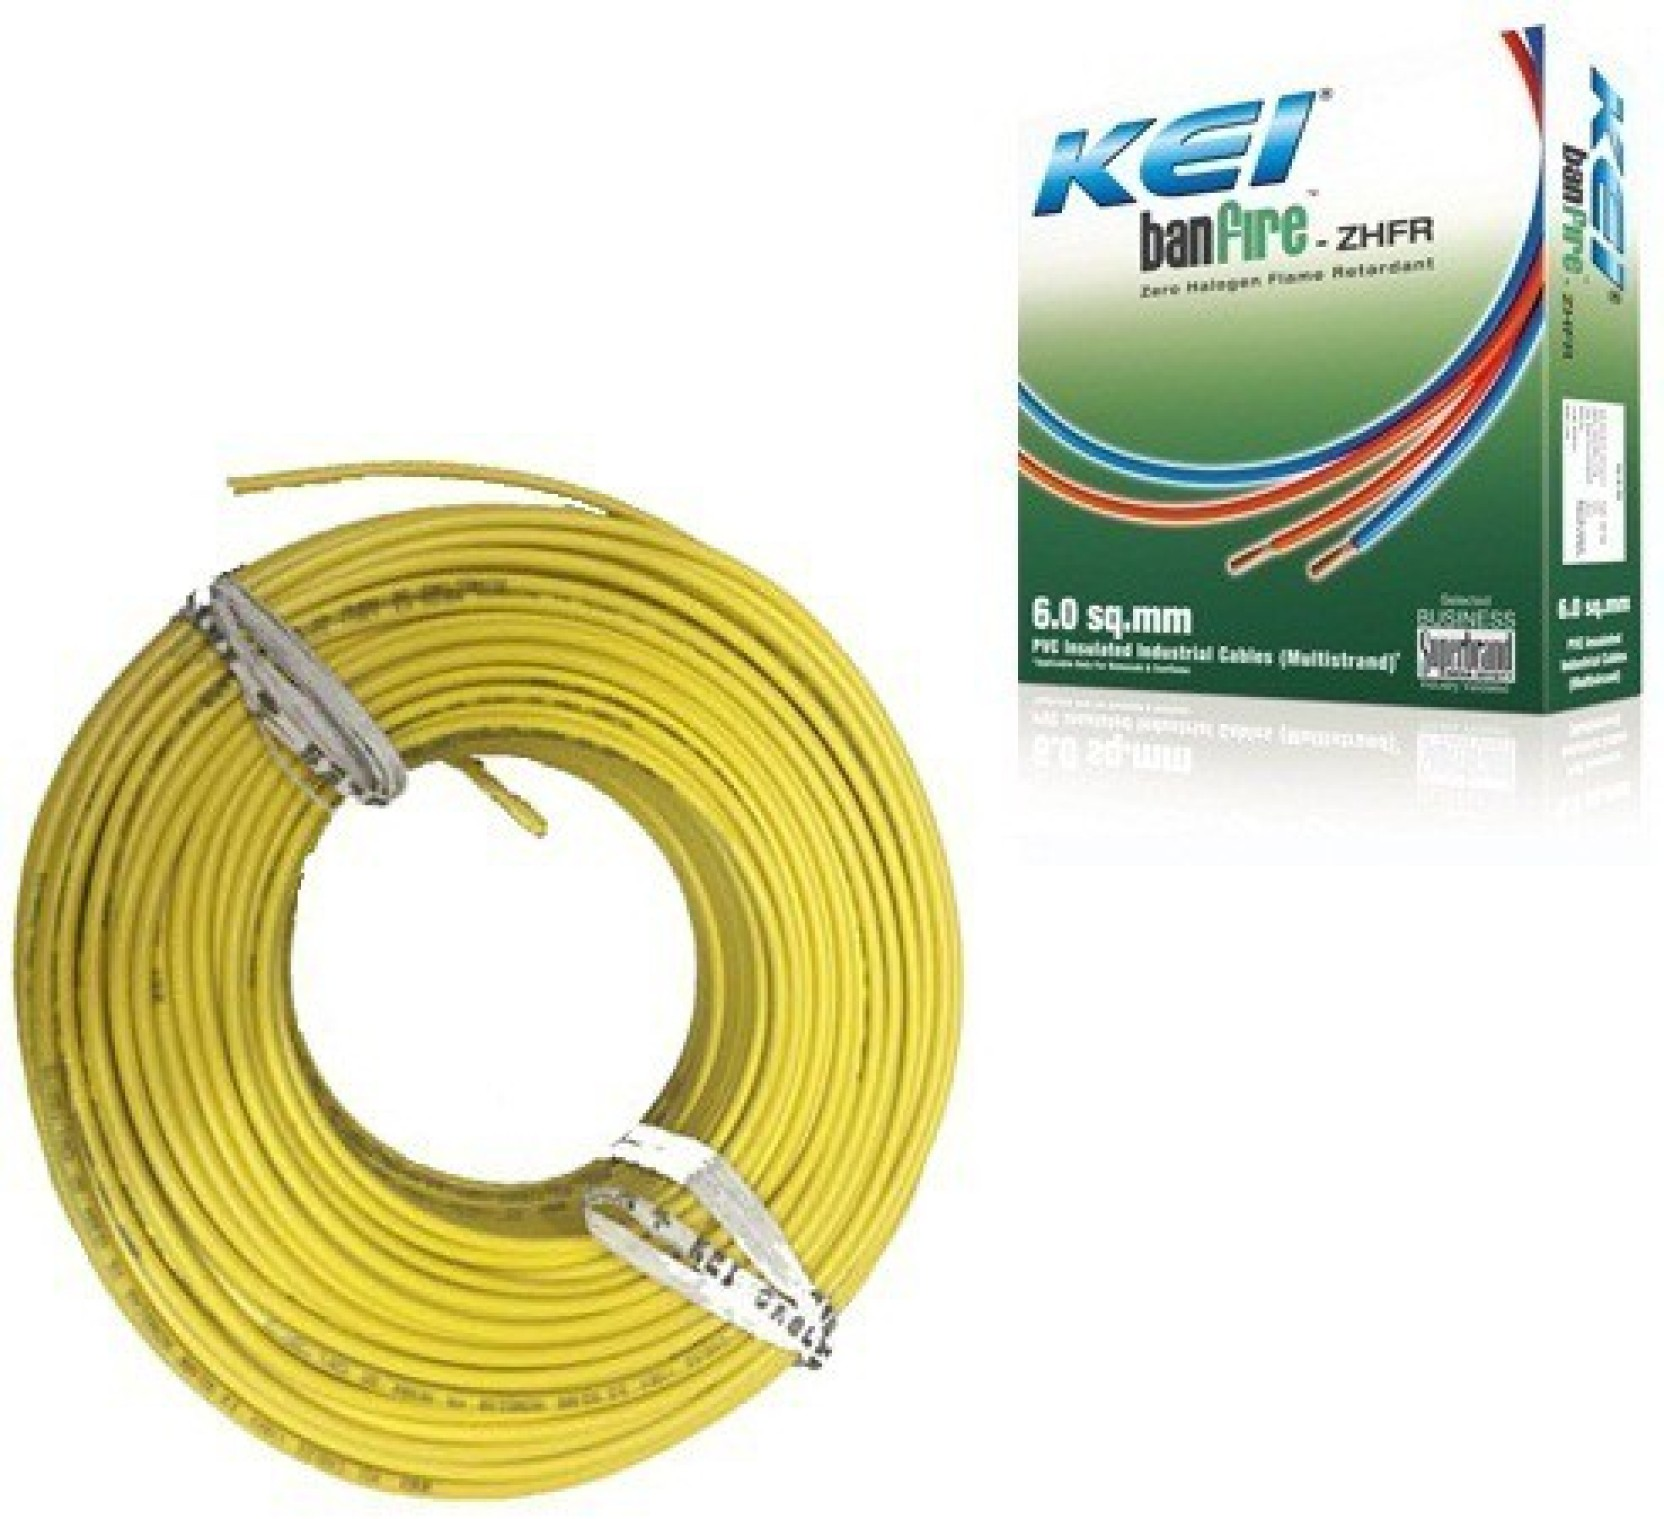 Kei Fr Pvc 15 Sq Mm Yellow 180 M Wire Price In India Buy Wiring A House For Cable Share